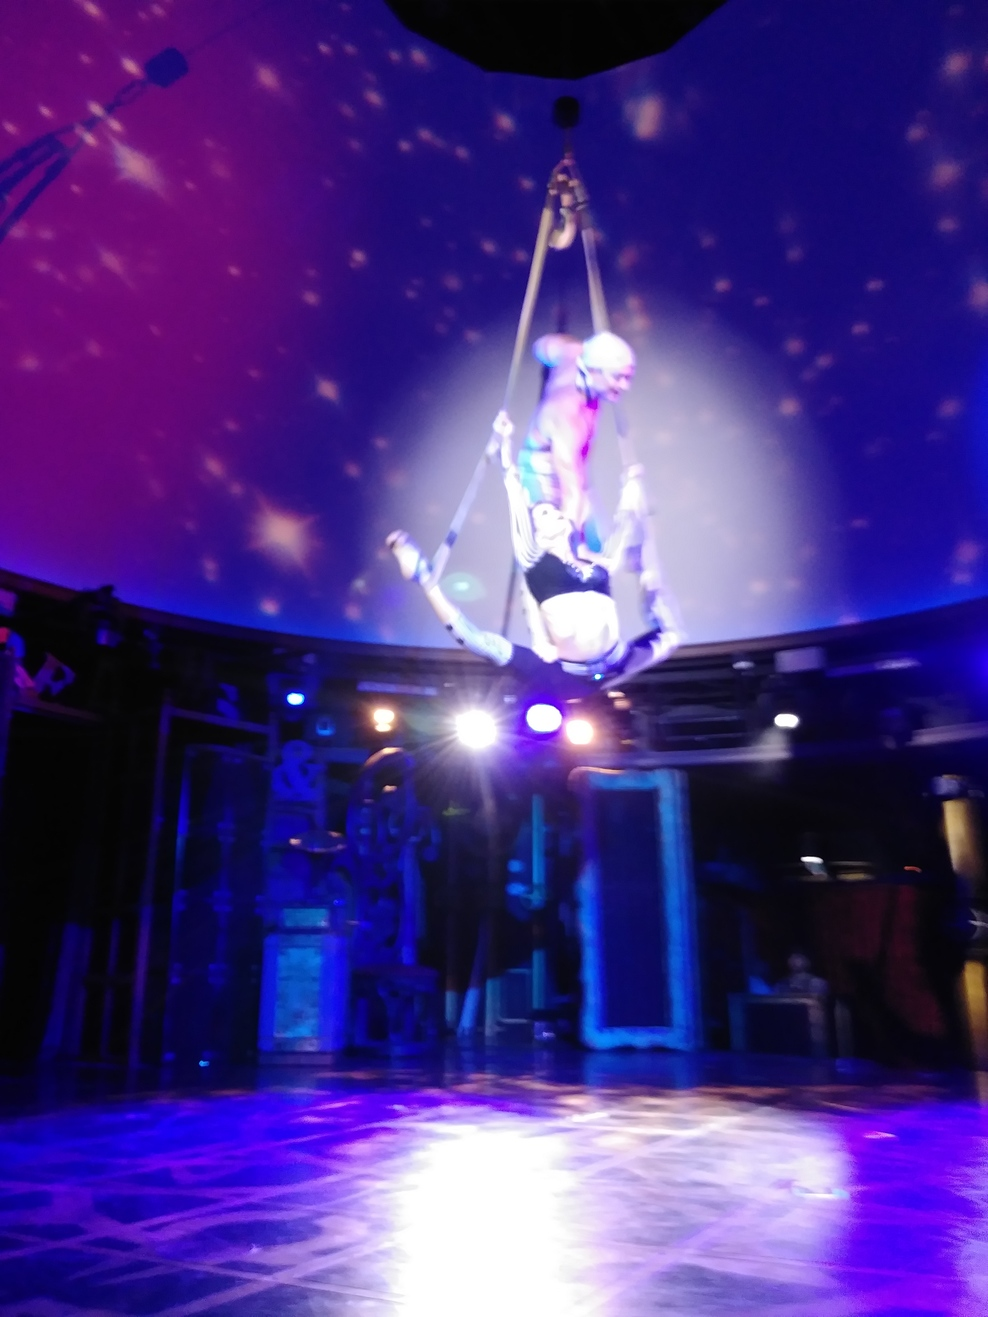 Cirque Dreams and Steam Dinner show. I read the food wasn't that great